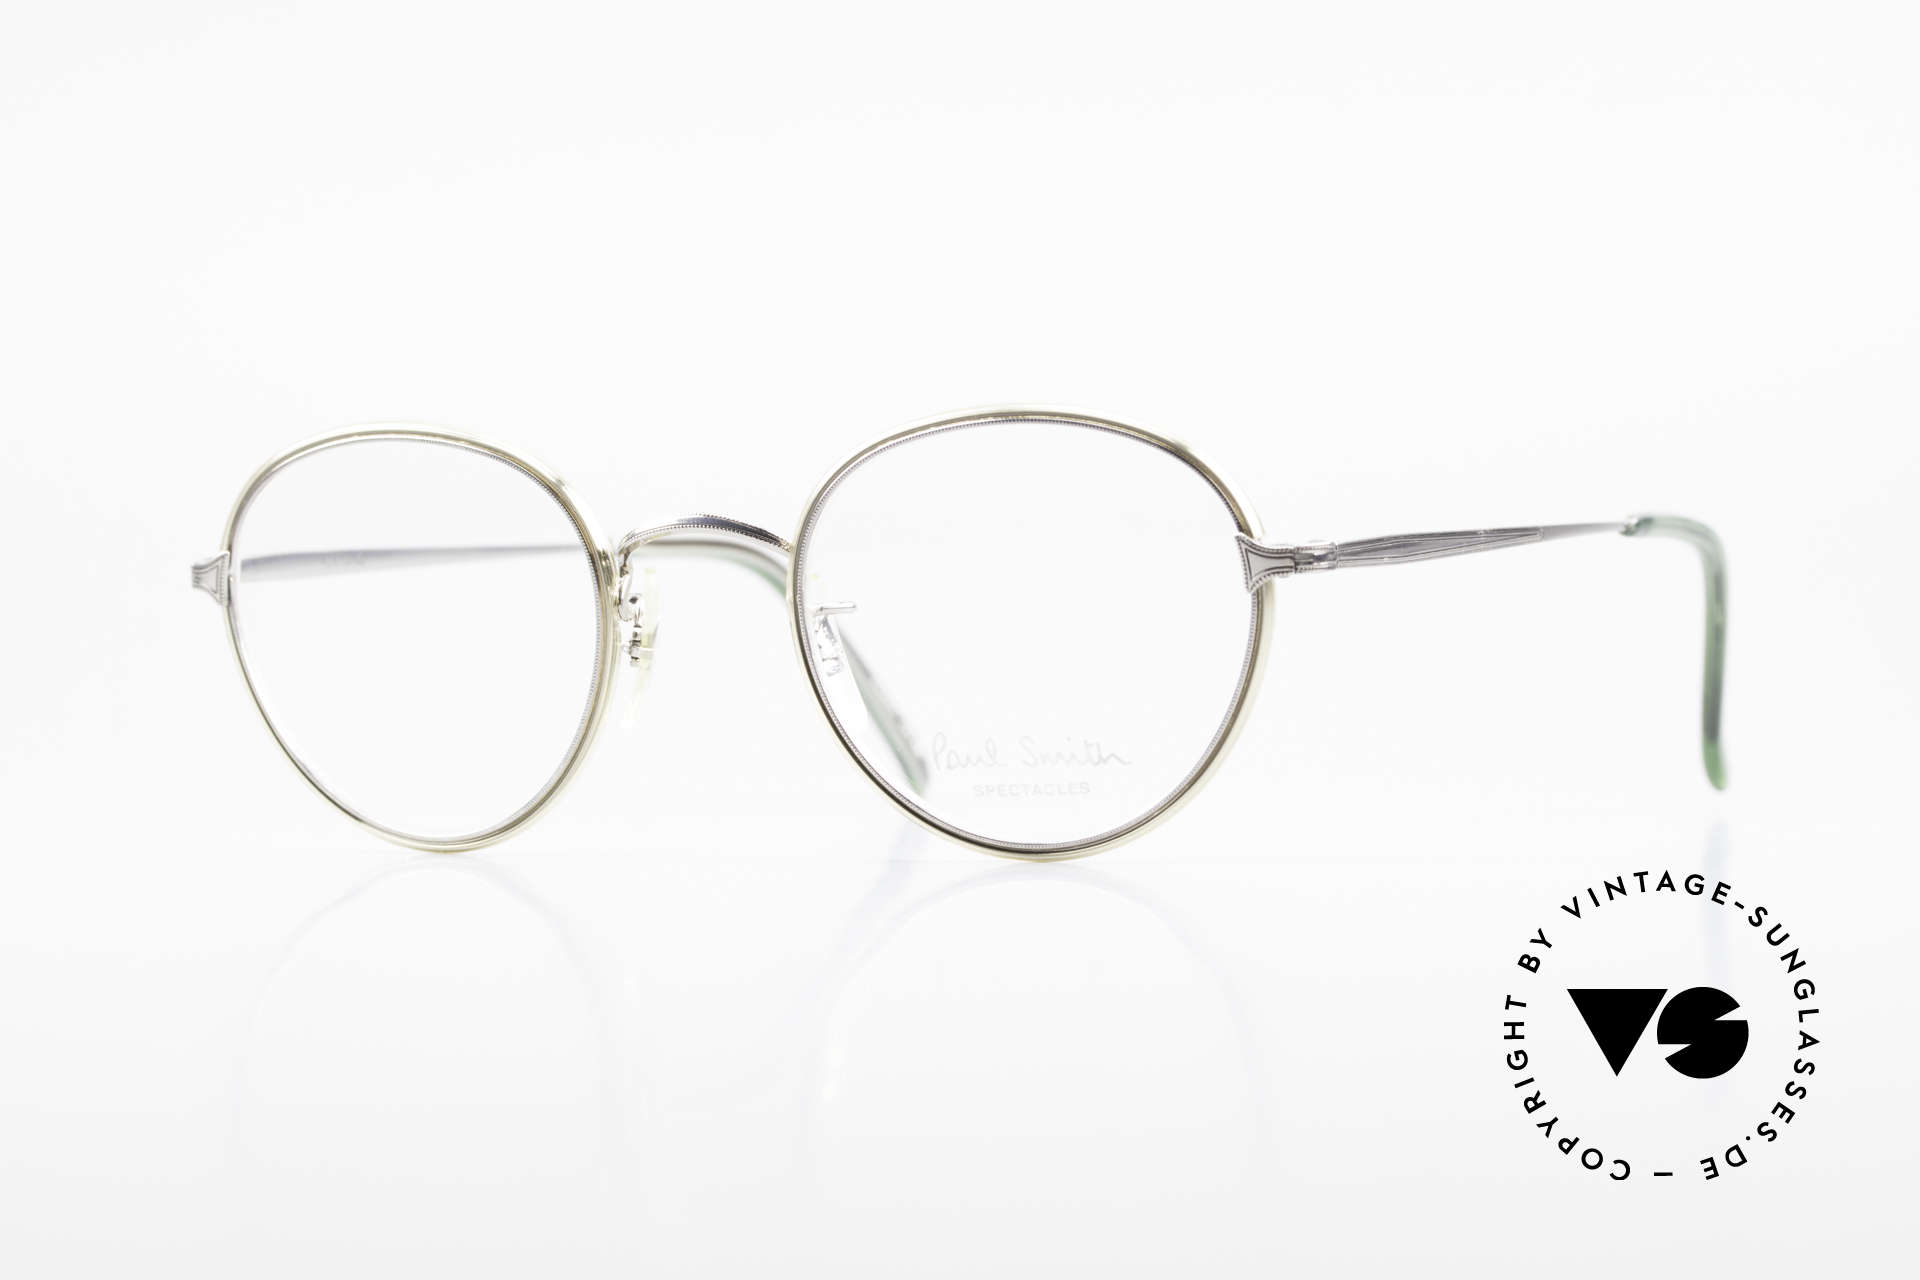 Paul Smith PSR109 80s Panto Frame Old Original, Paul Smith vintage glasses from the late 80's/early 90's, Made for Men